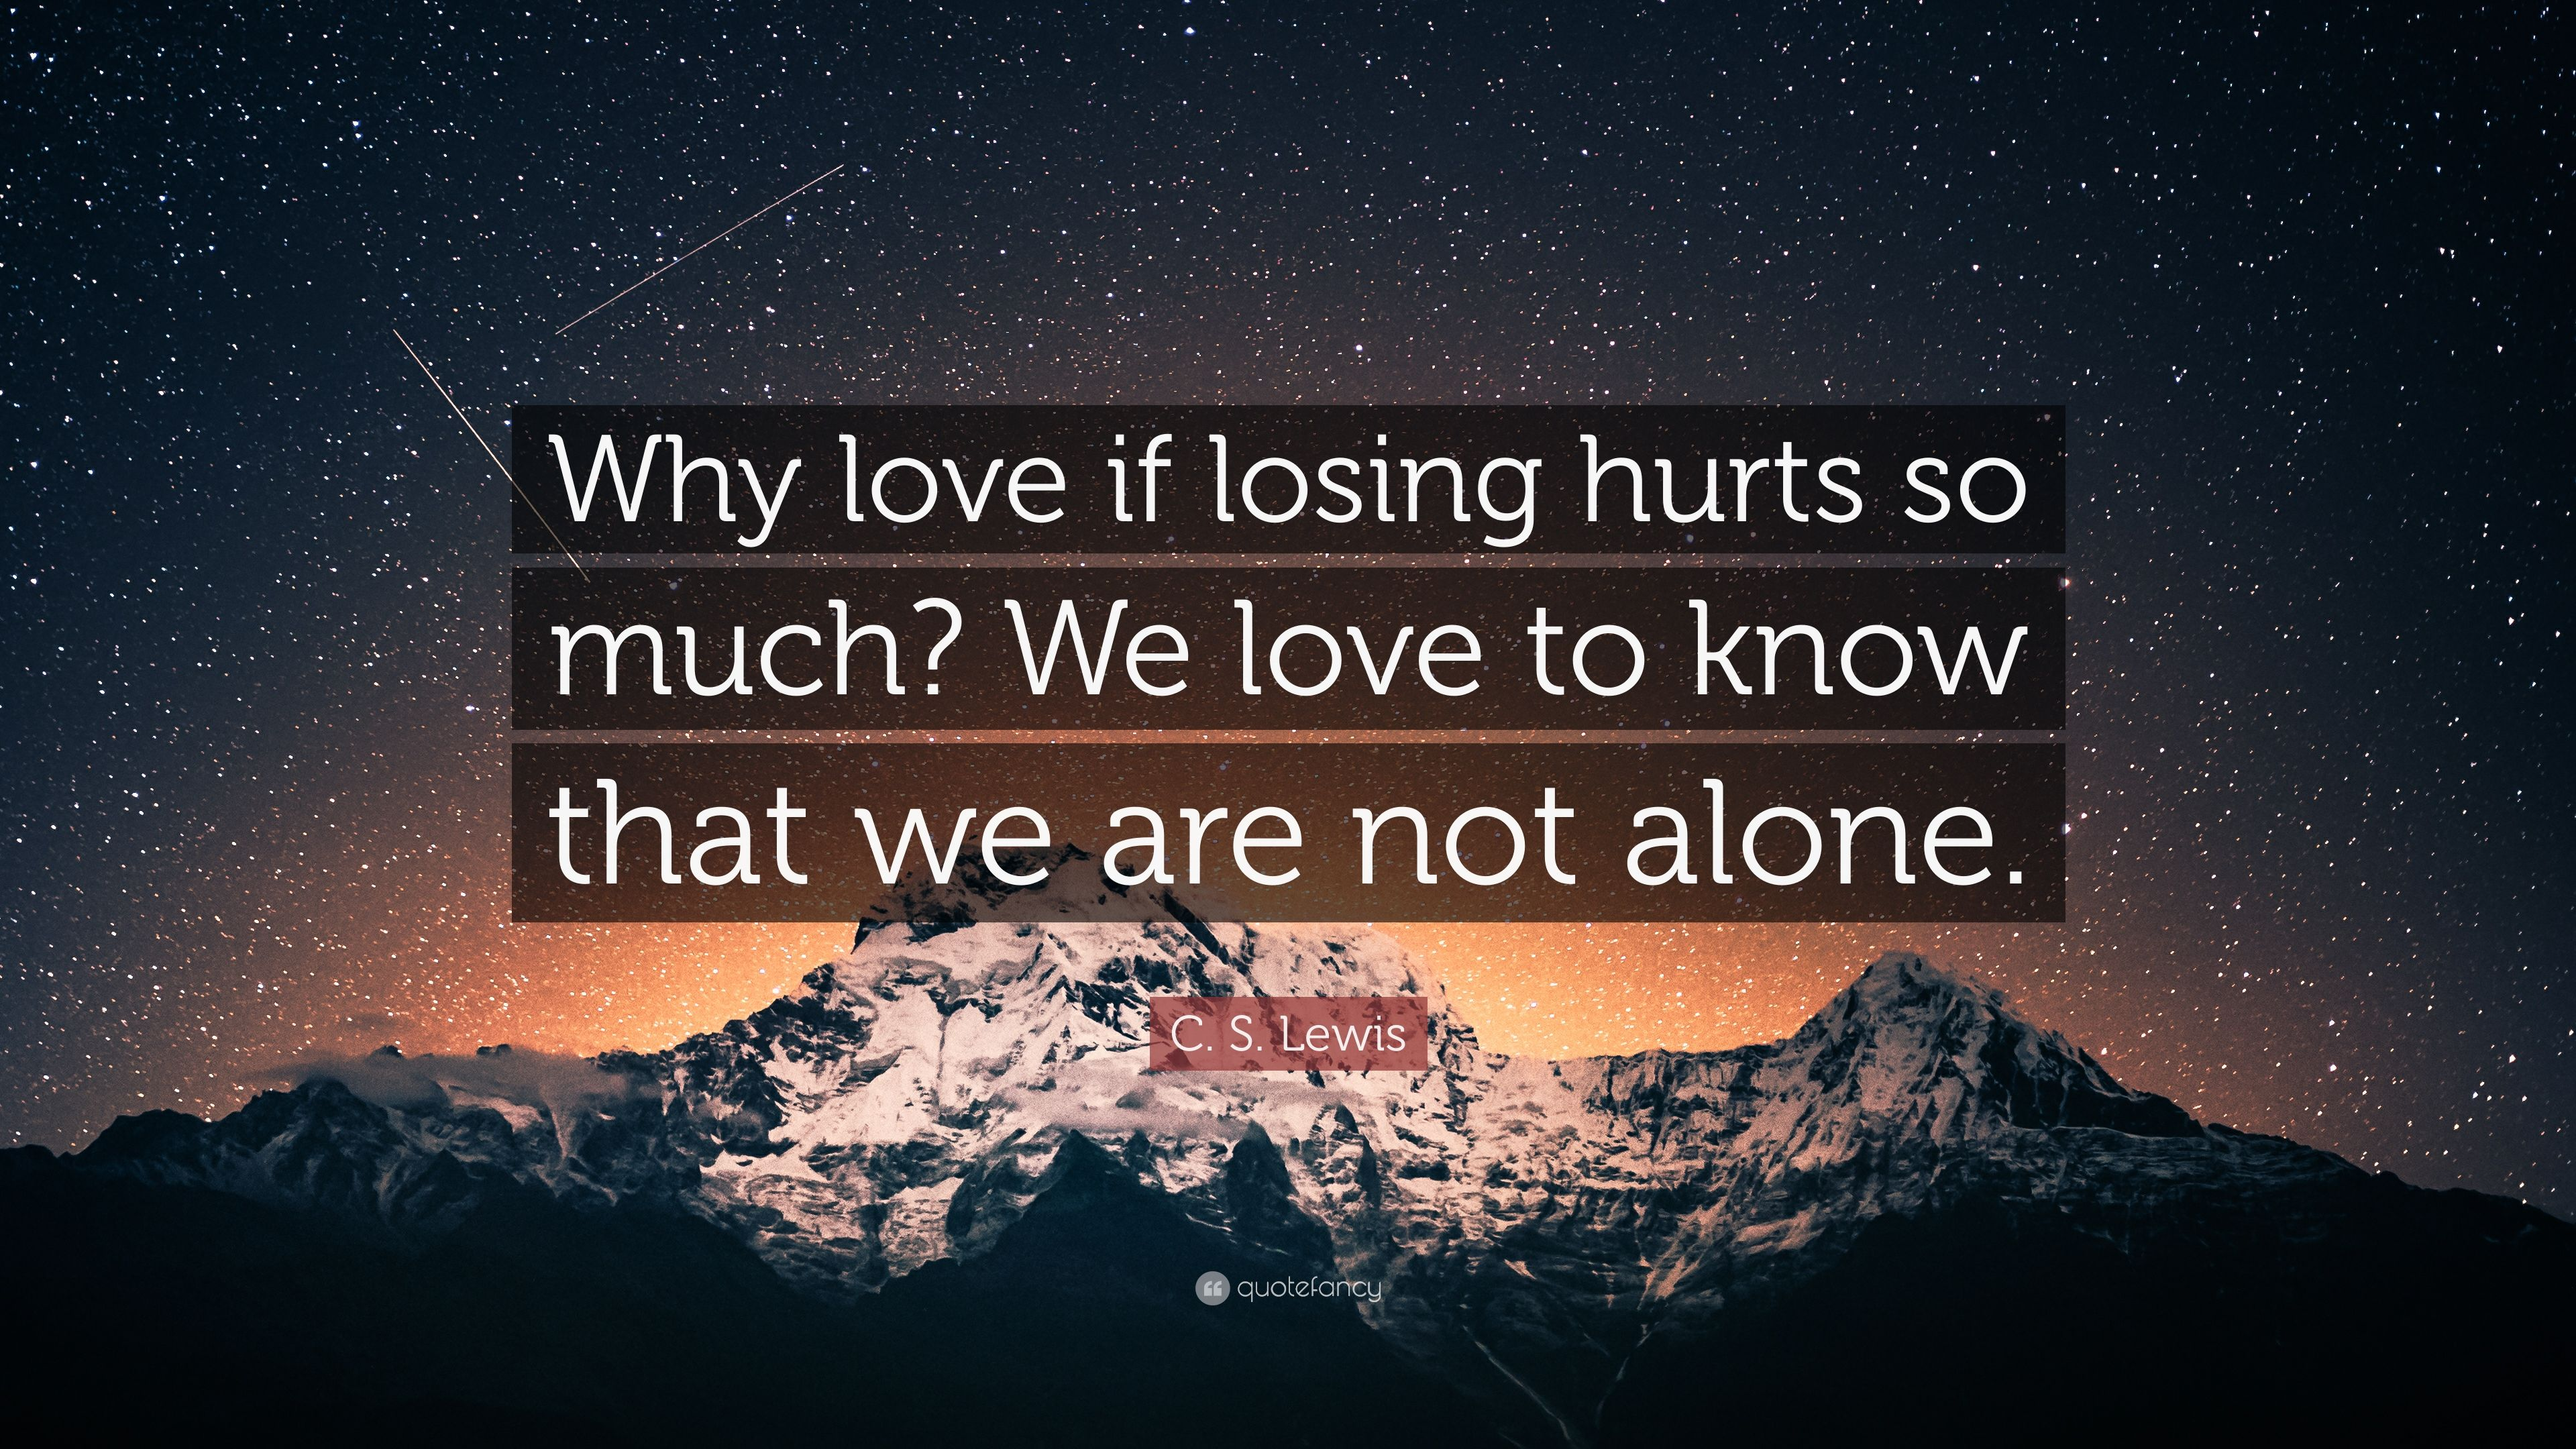 C. S. Lewis Quote: Why love if losing hurts so much? We